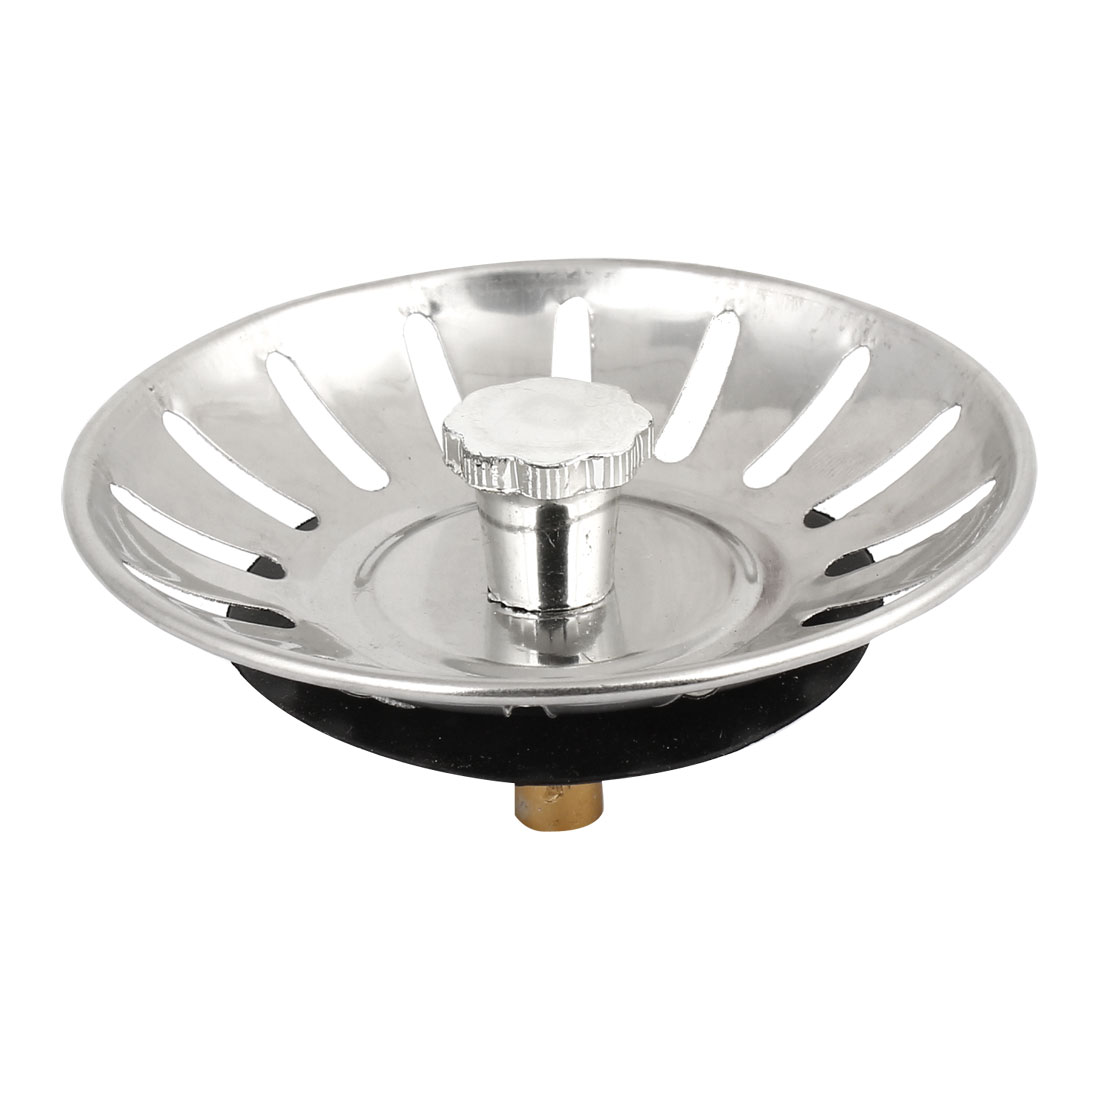 80mm Diameter Kitchen Silver Tone Sink Basin Colander Filter Strainer